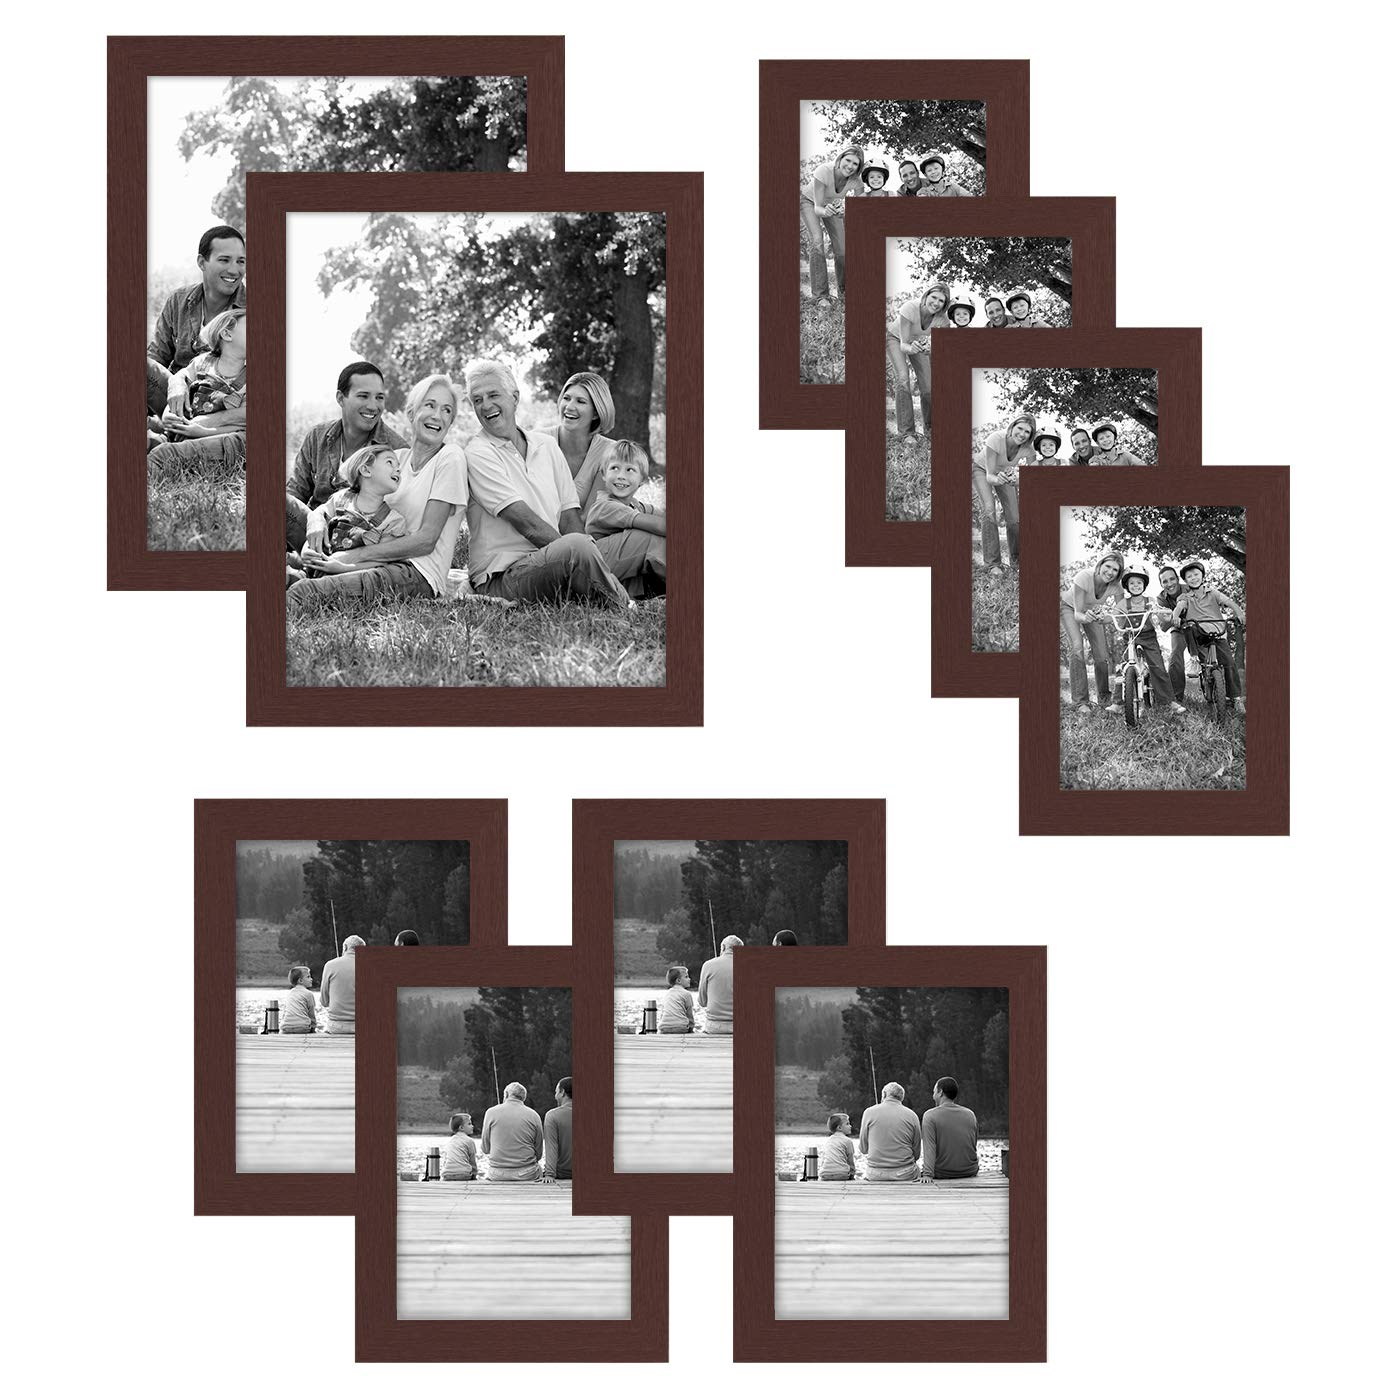 Americanflat 10-Piece Multi Pack Mahogany Frames; Includes (2) 8x10 Frames, (4) 5x7 Frames, (4) 4x6 Frames by Americanflat